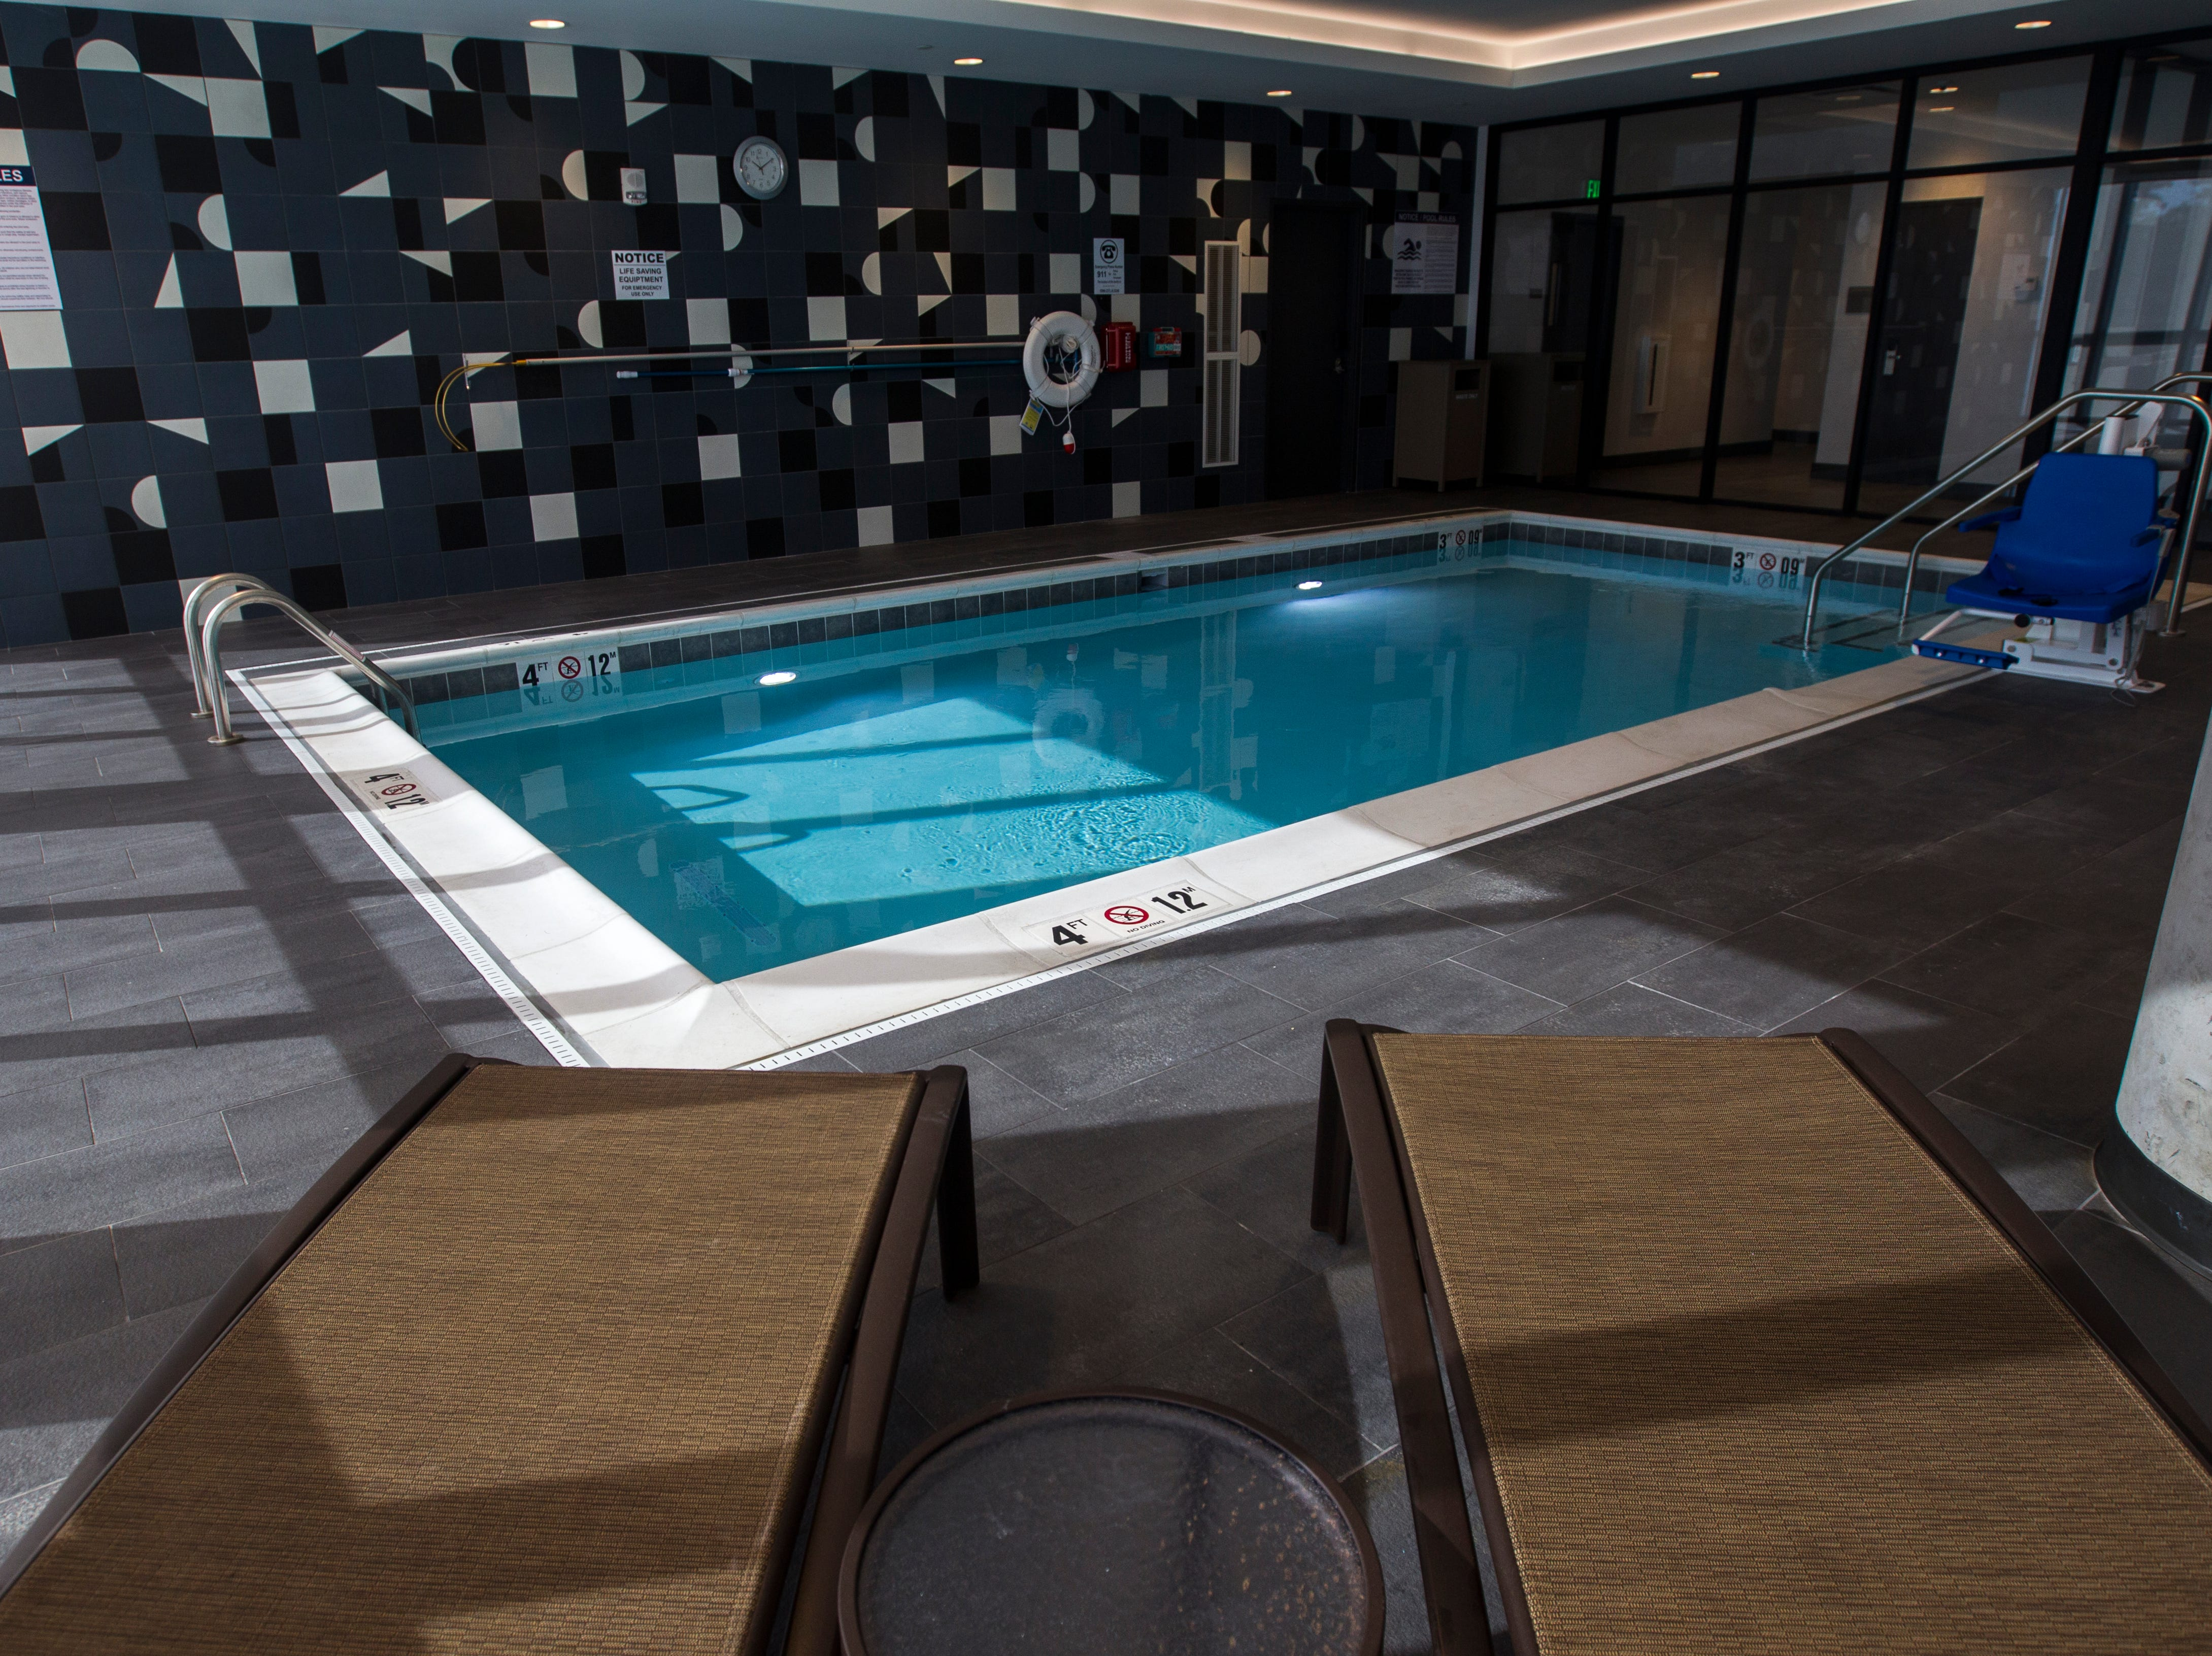 A second floor swimming pool is seen during a tour on Tuesday, Sept. 4, 2018, at Hyatt Place on the corner of Court and Linn Streets in downtown Iowa City.